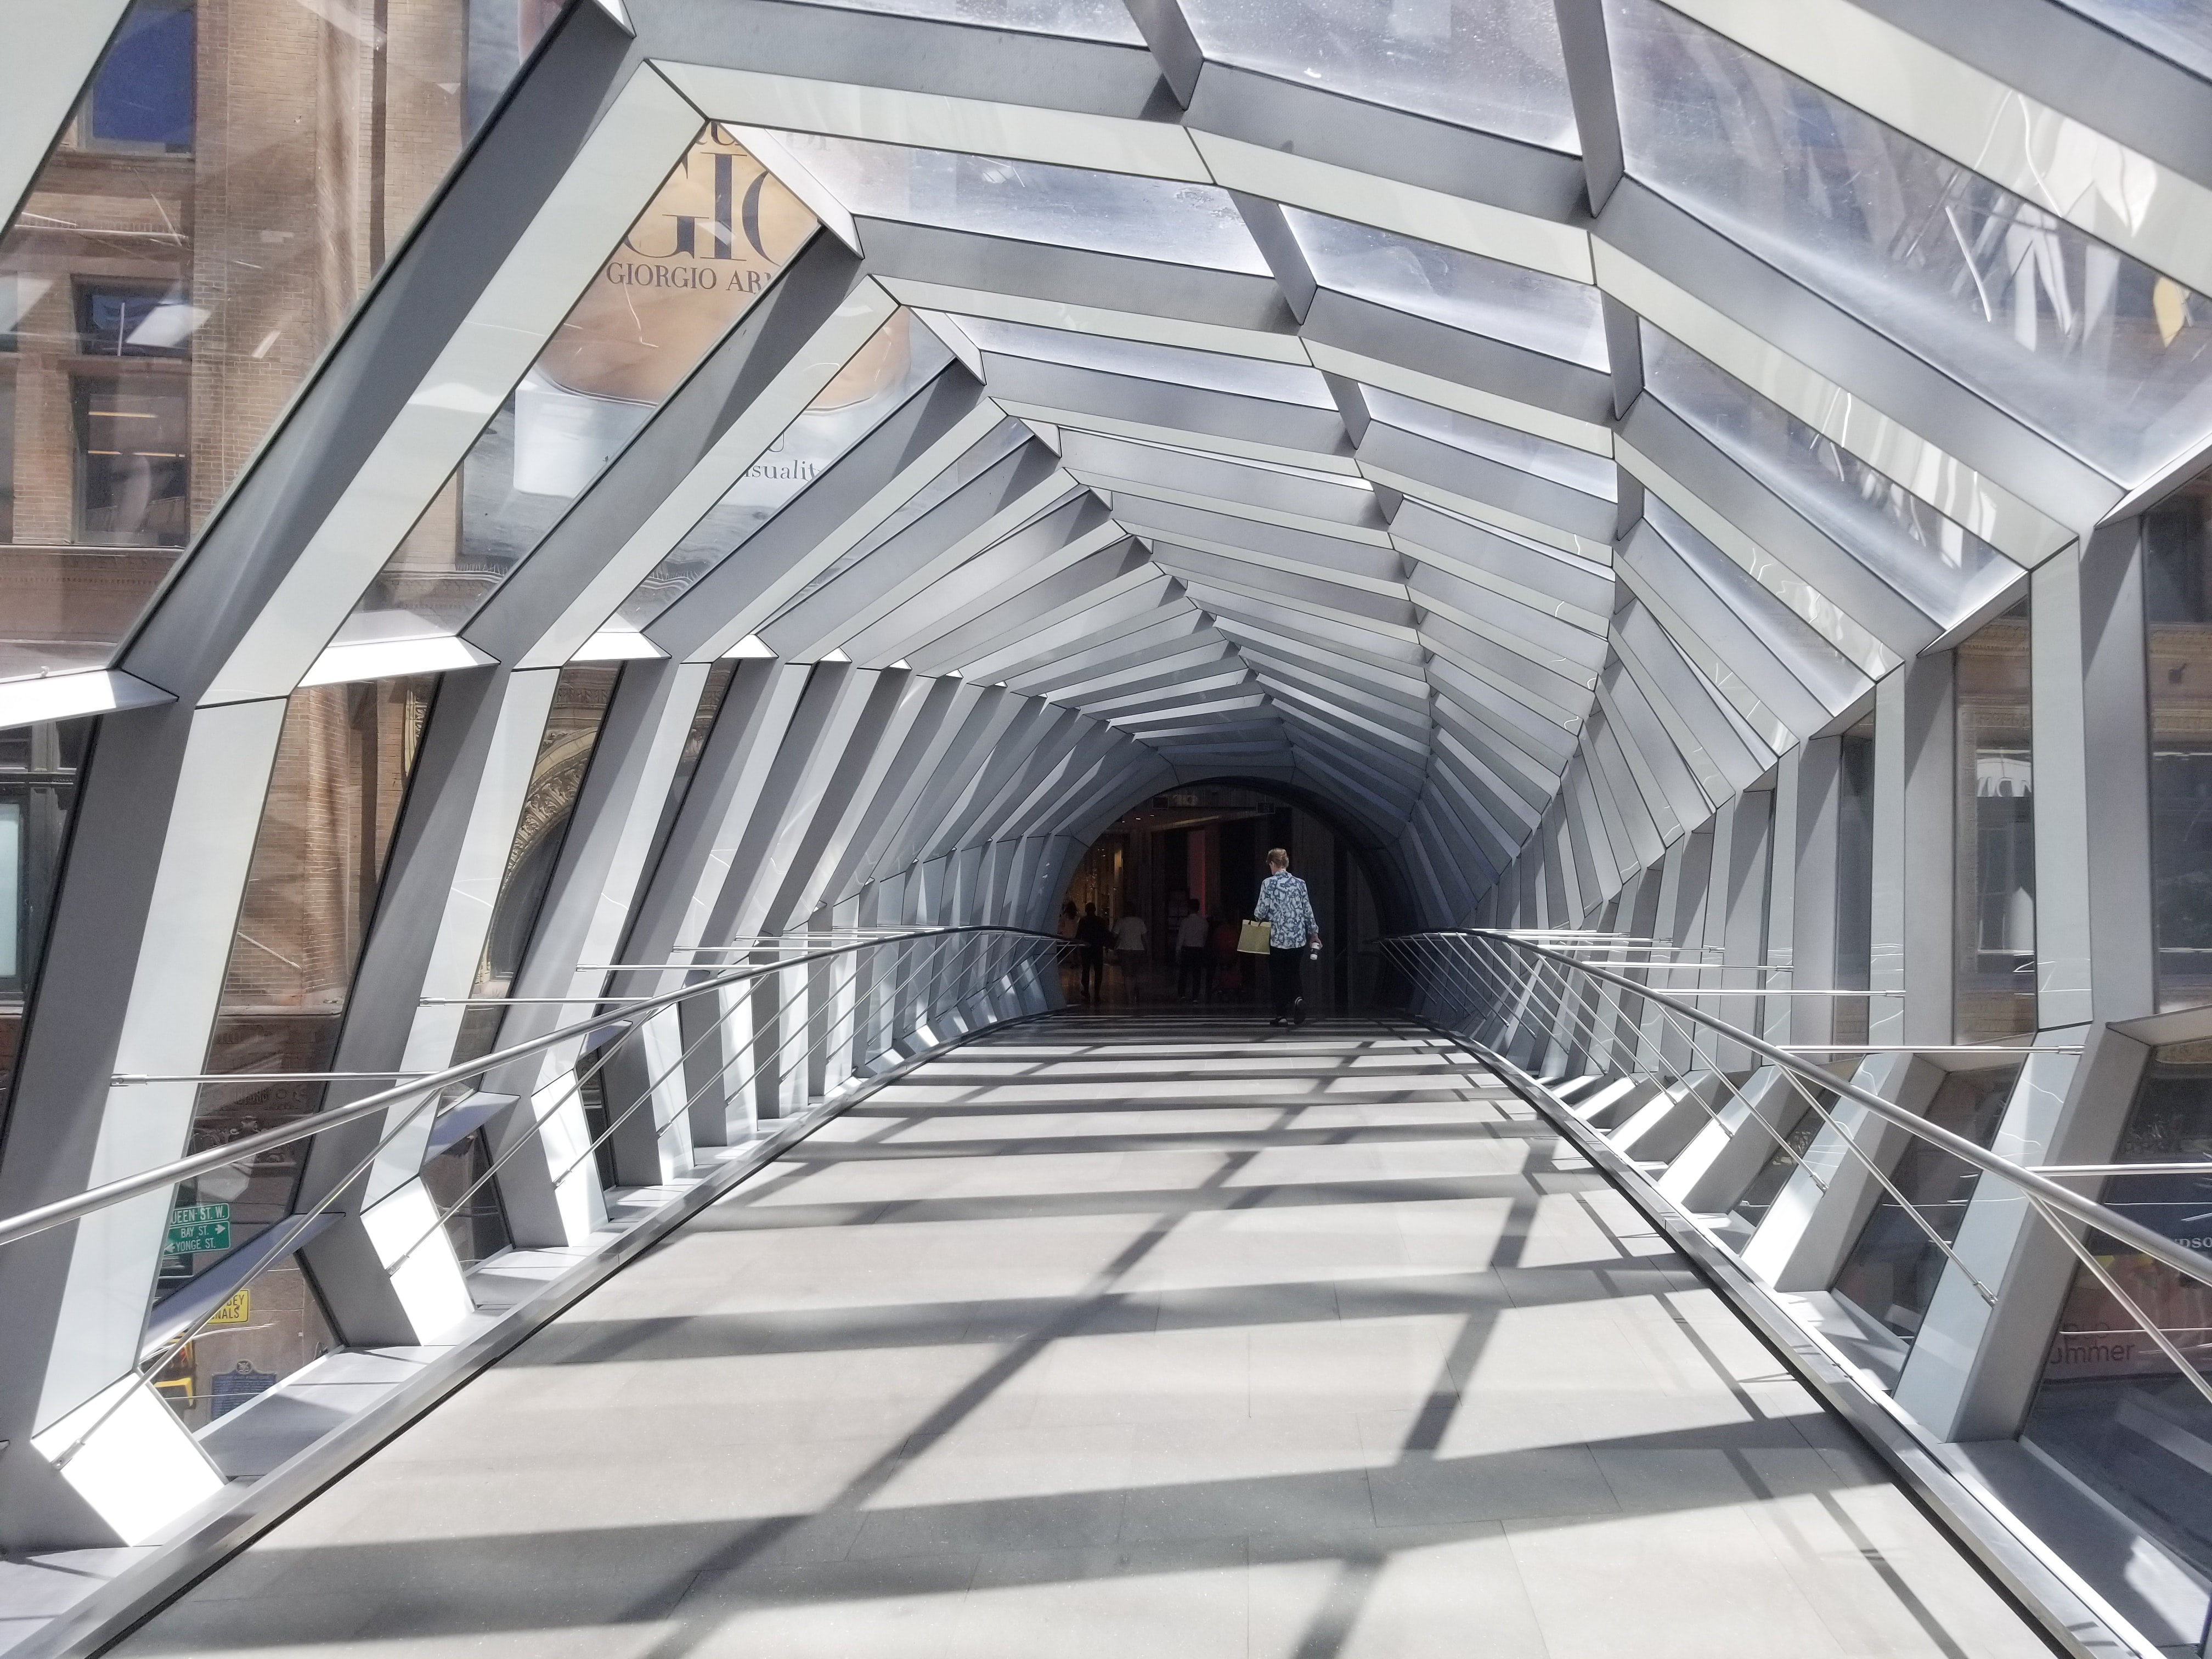 architectural photograph of pedestrian bridge